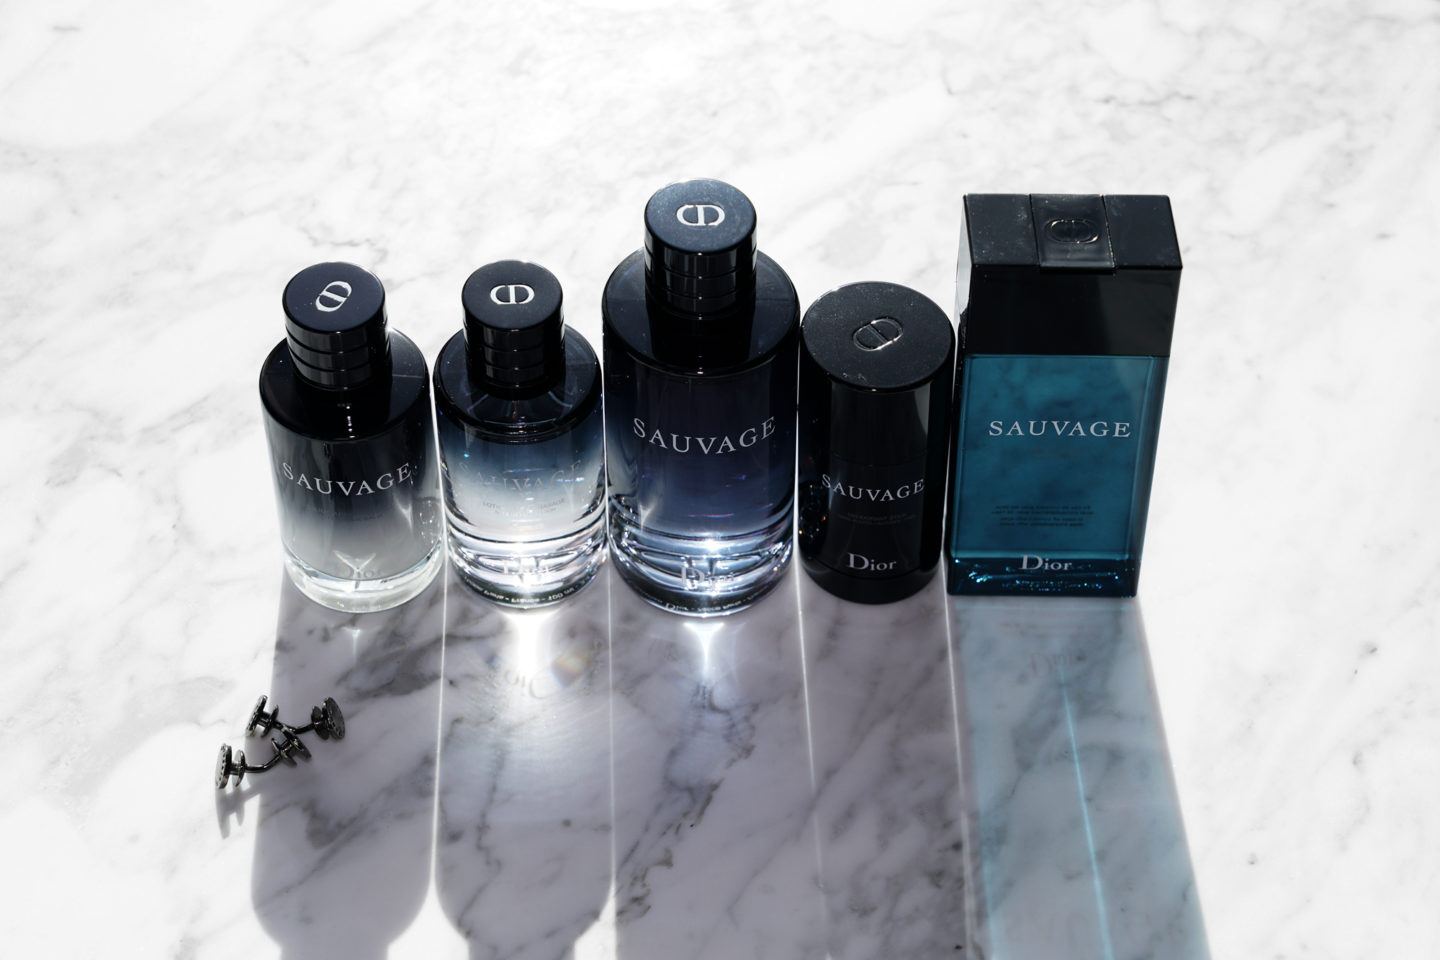 Dior Sauvage for Men Review